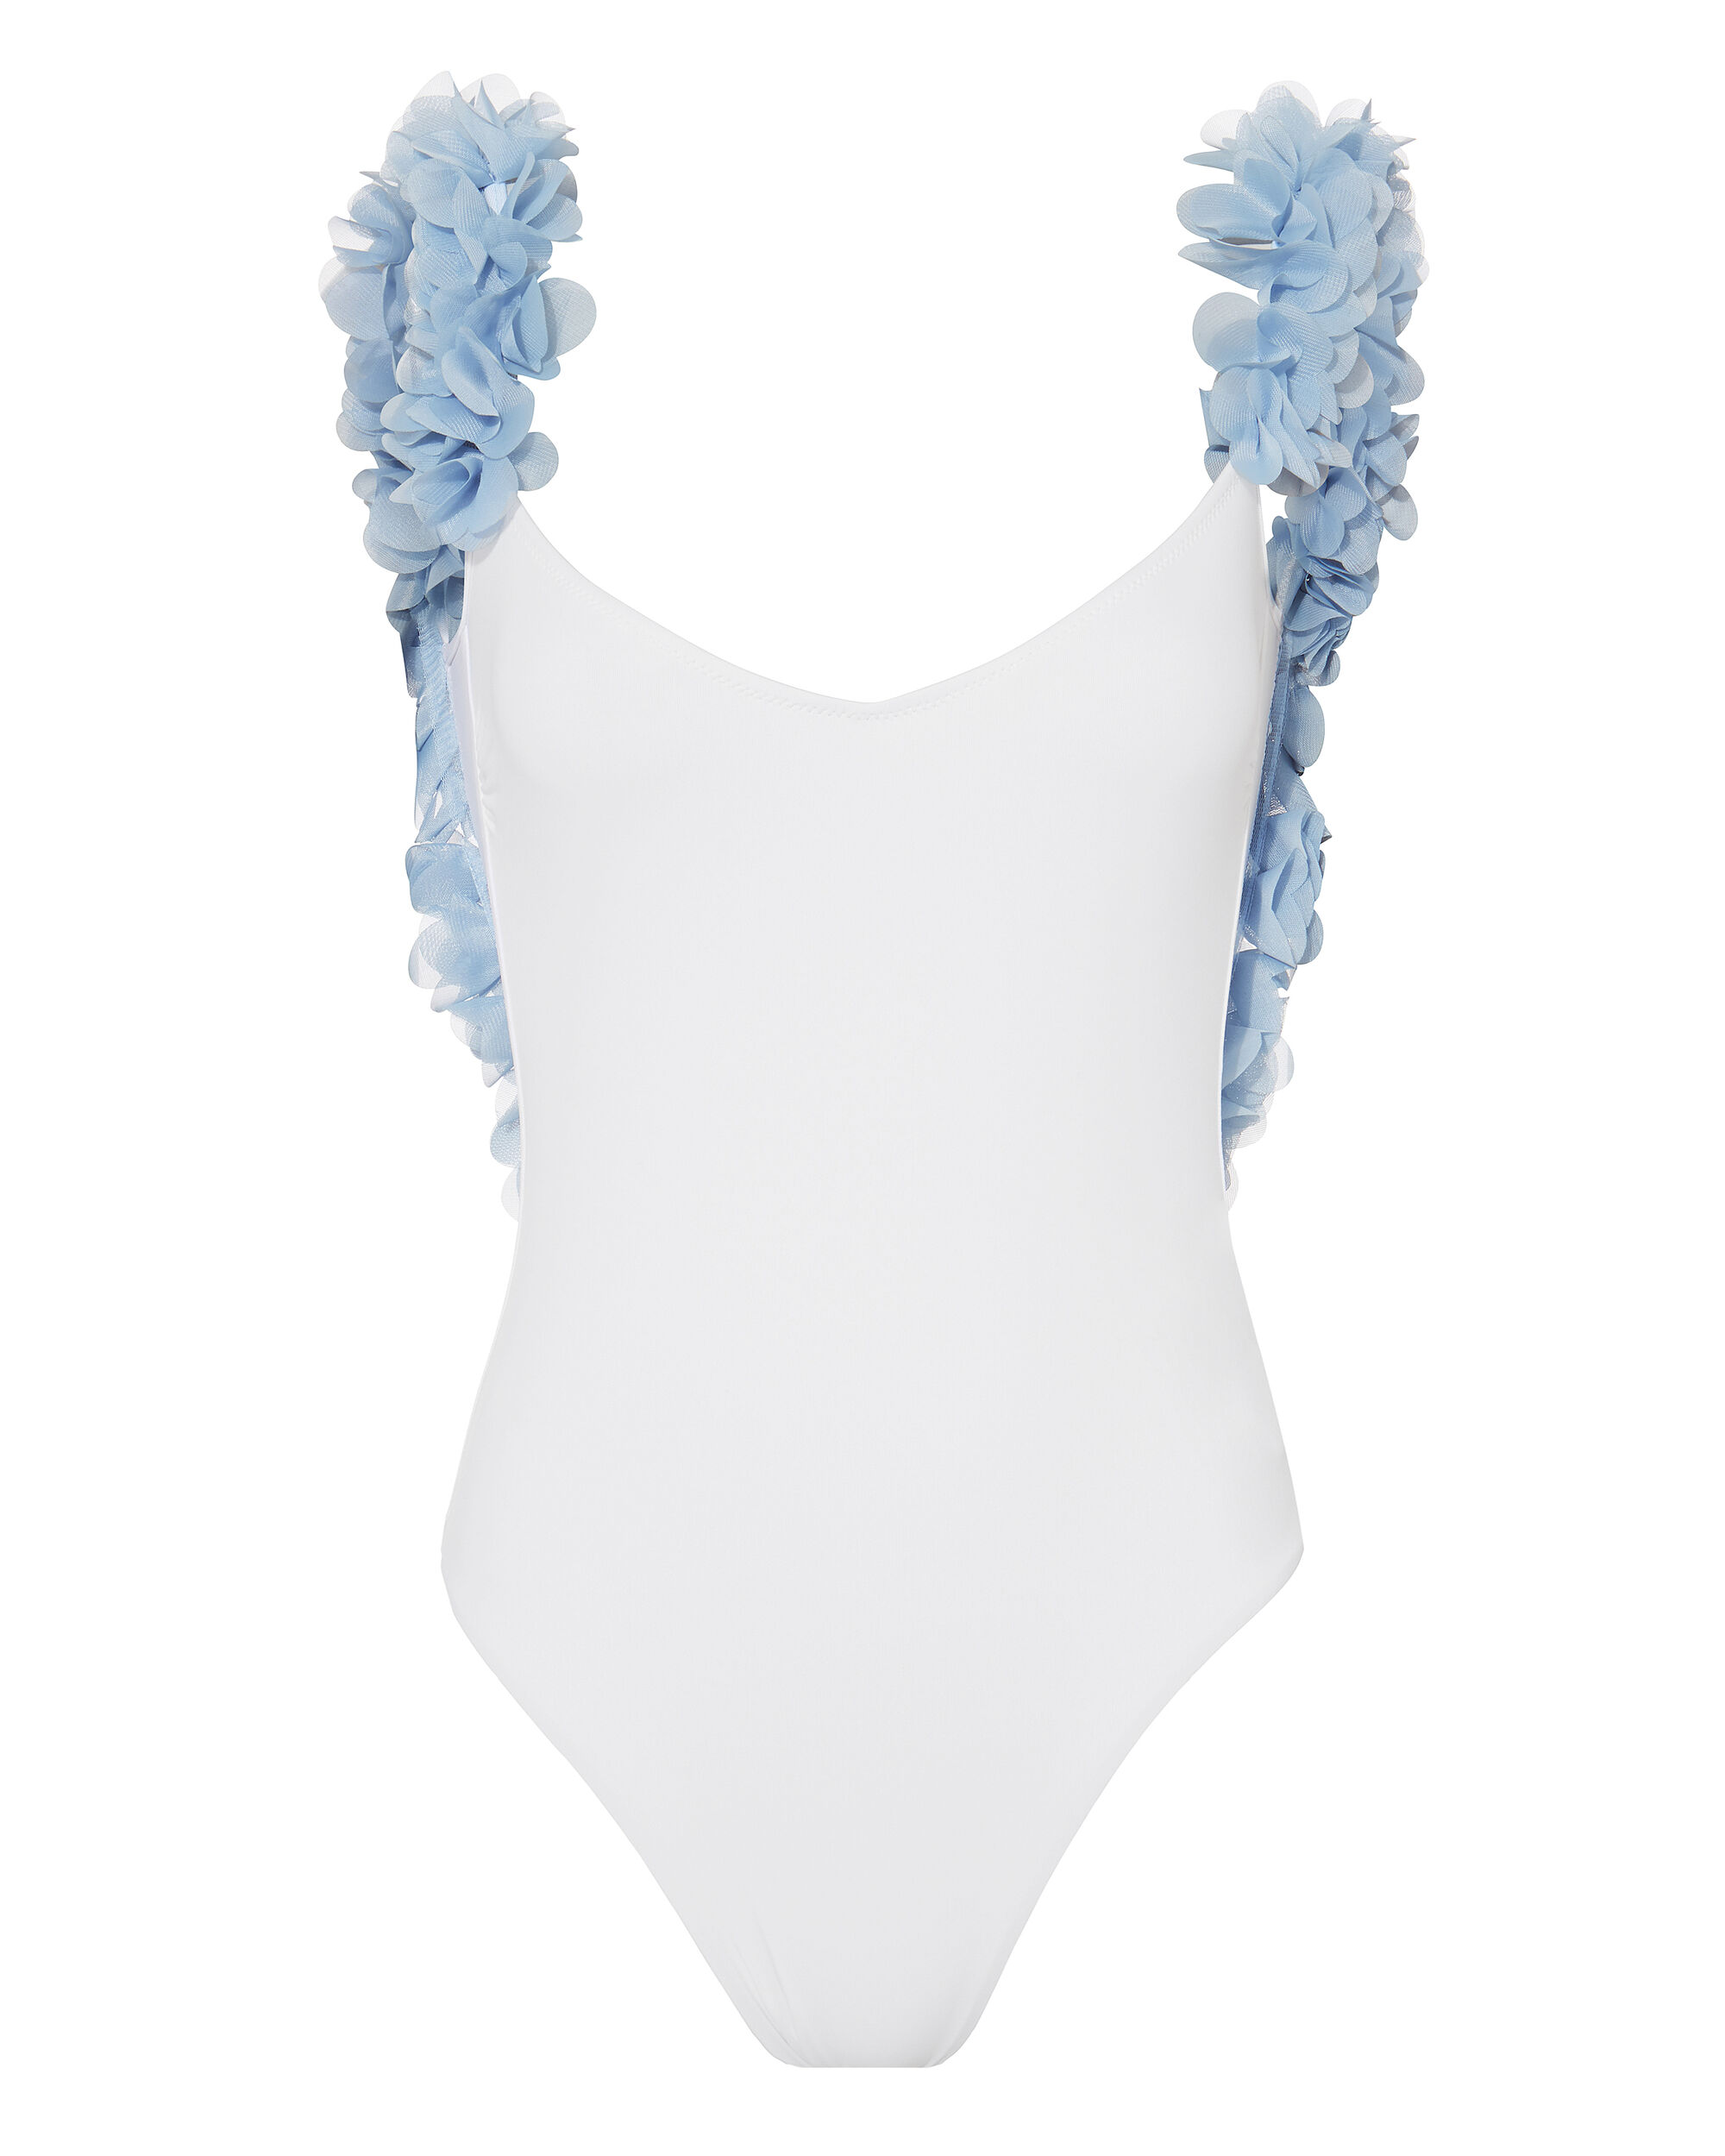 Amira Blue Petal White One Piece Swimsuit, WHITE, hi-res